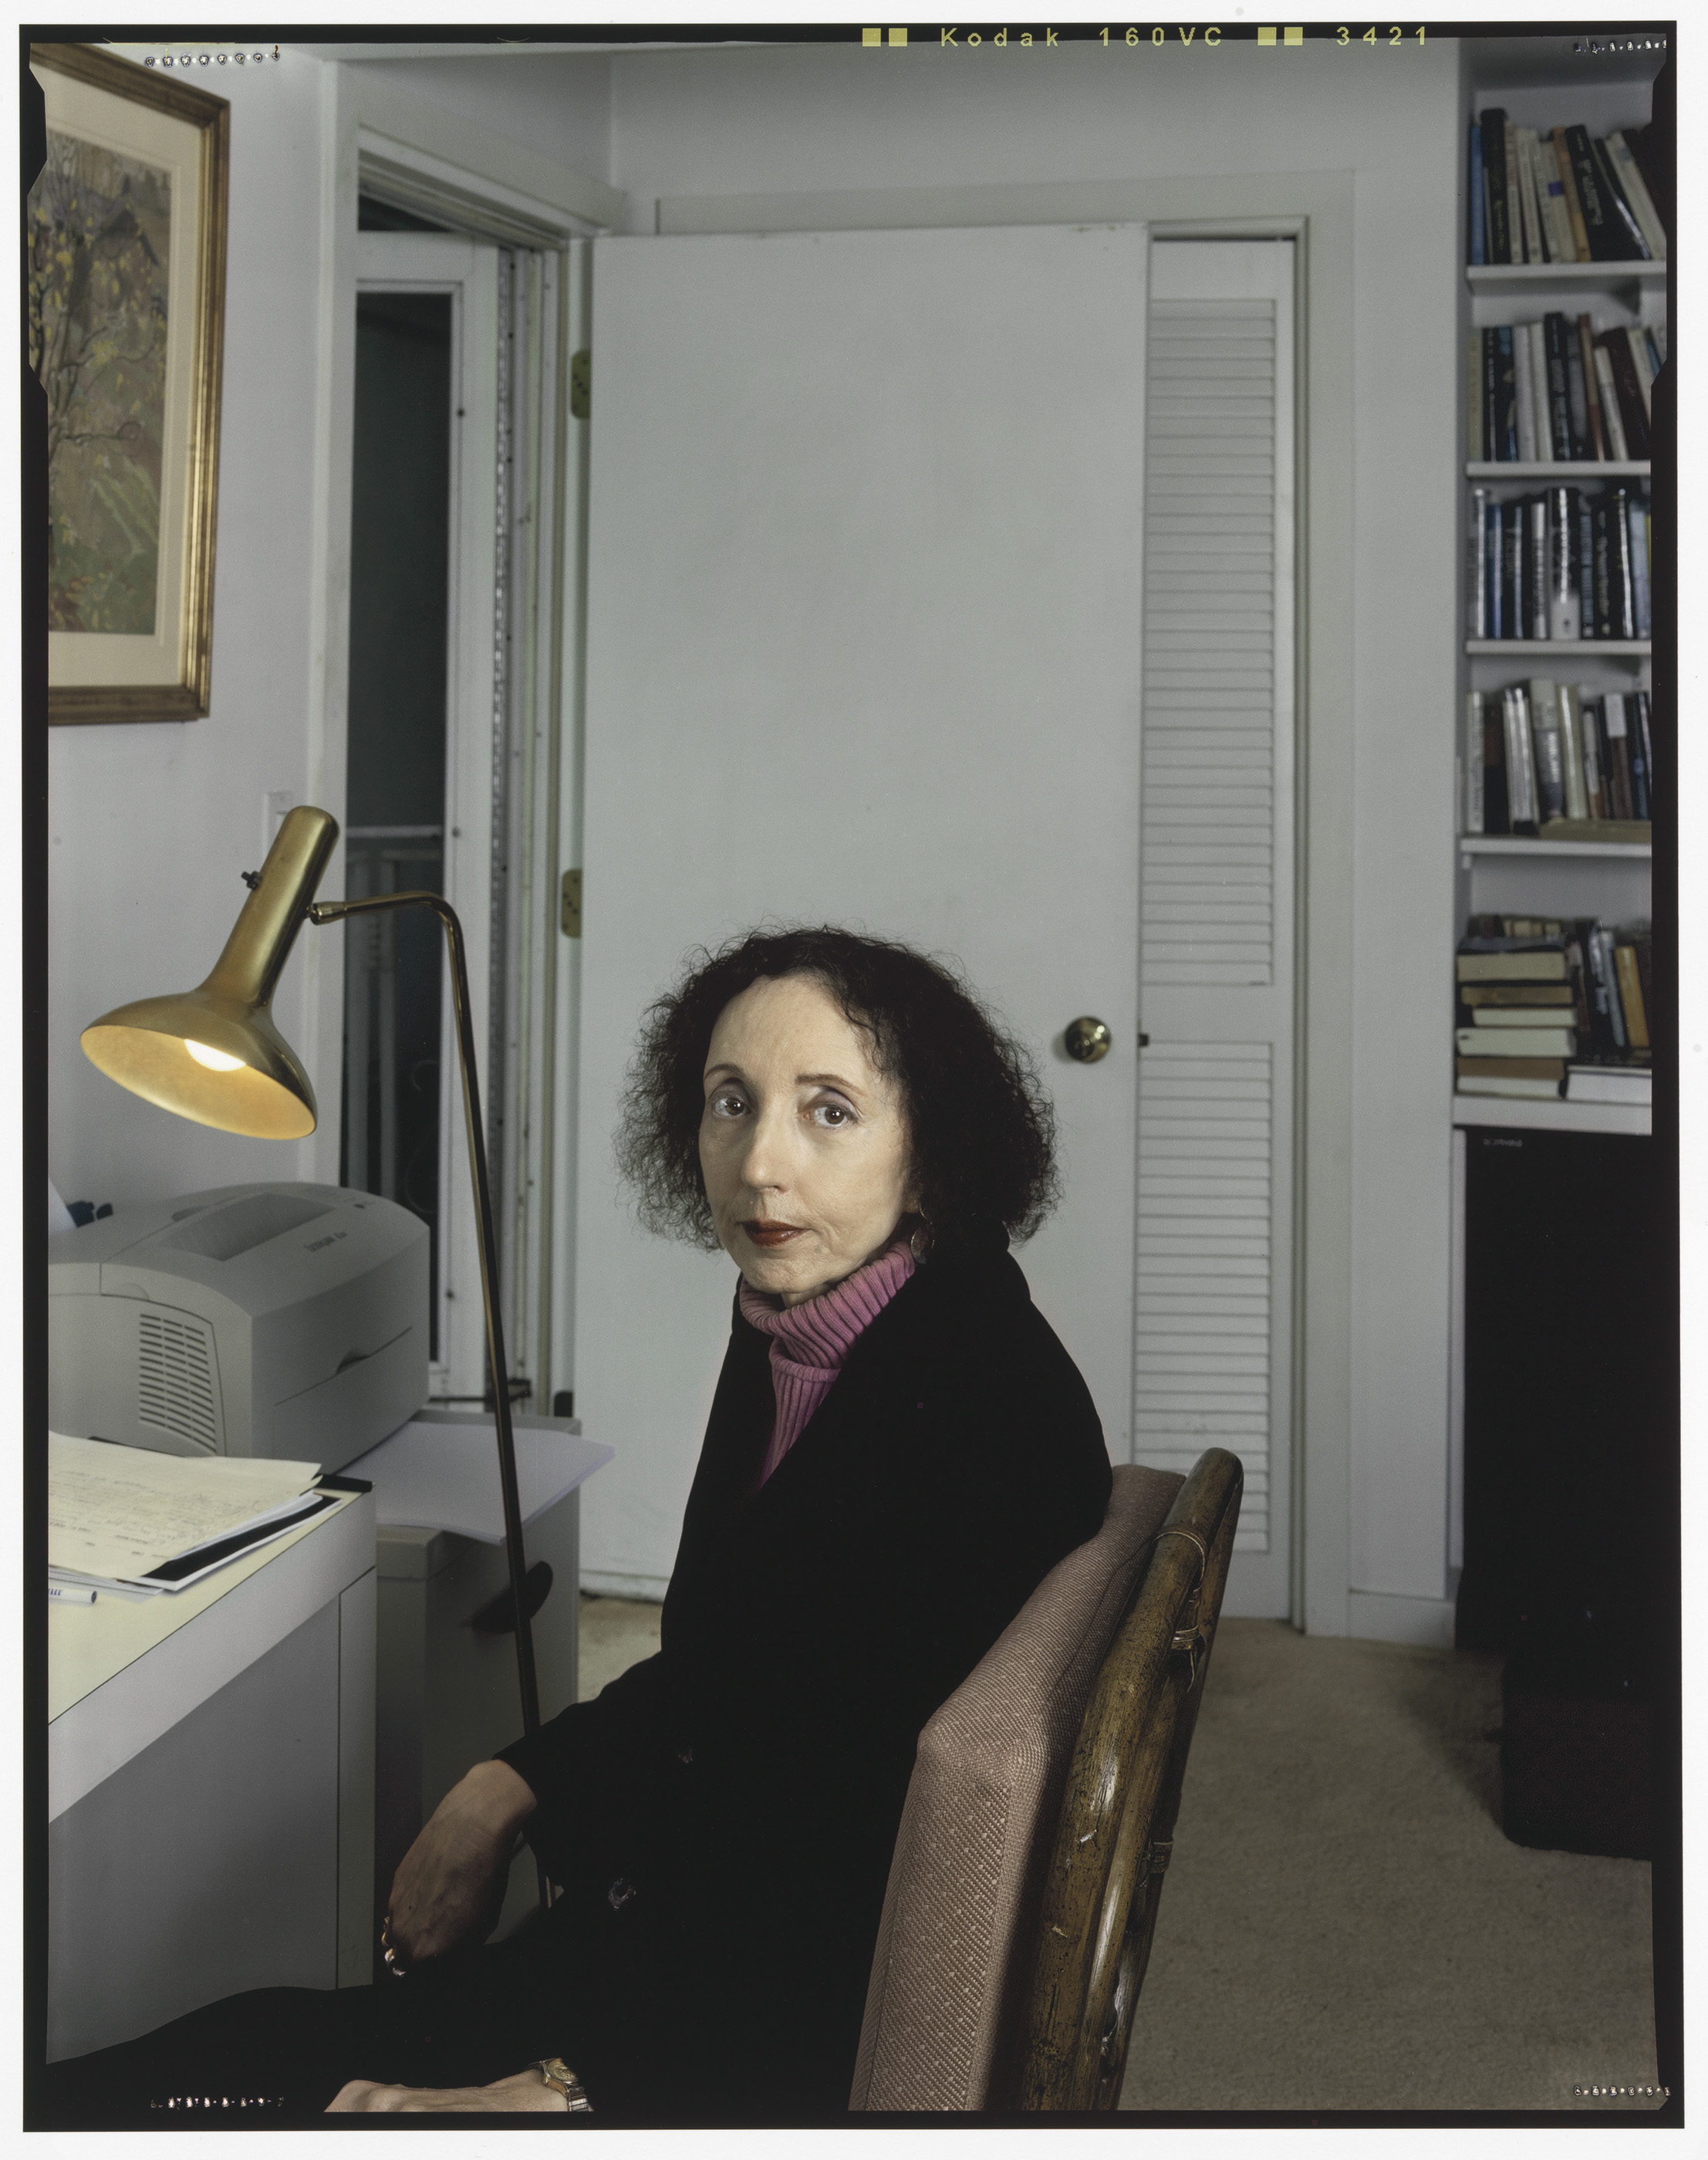 Photograph of a middle aged woman sitting in a study